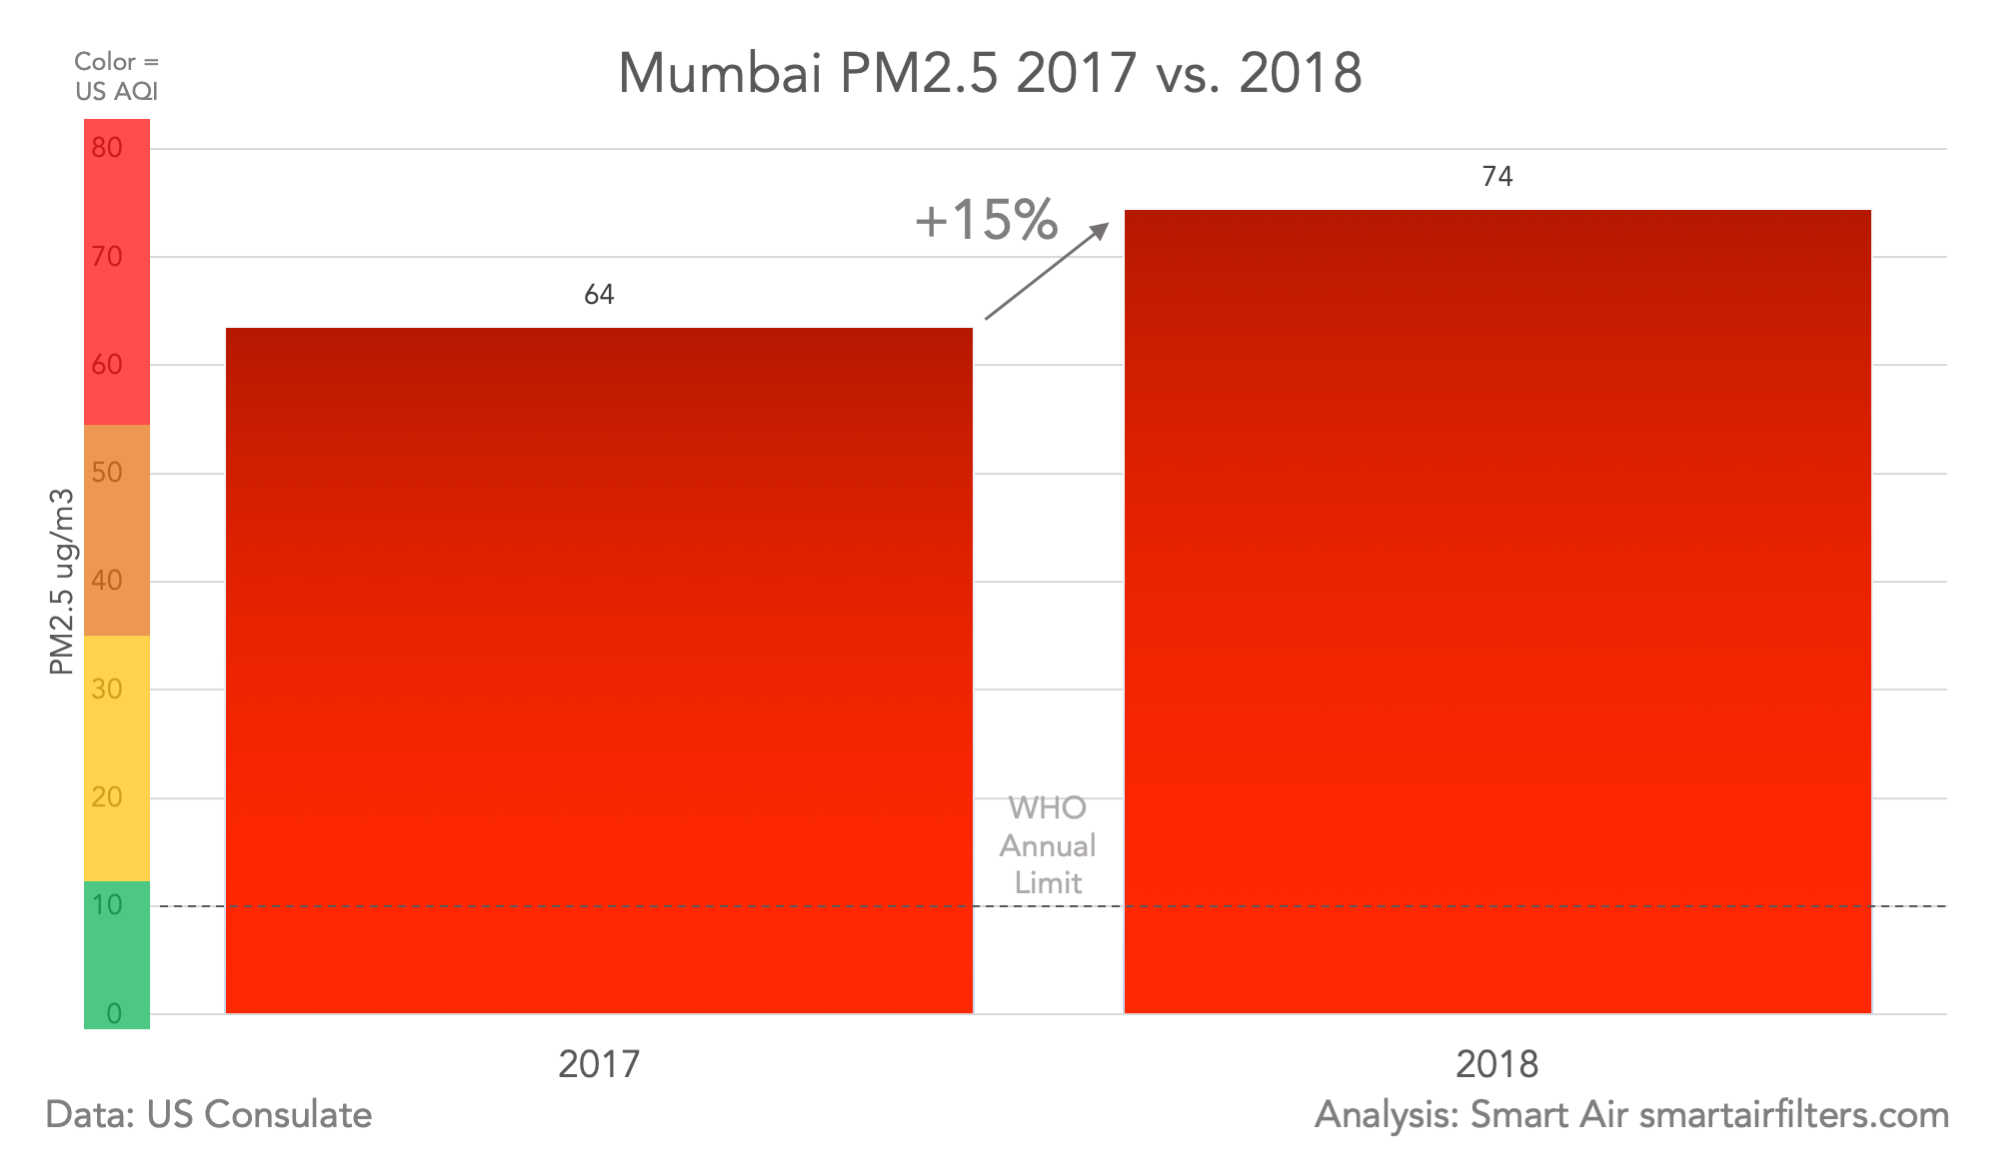 Mumbai 2018 Air Quality and PM2.5 air pollution data